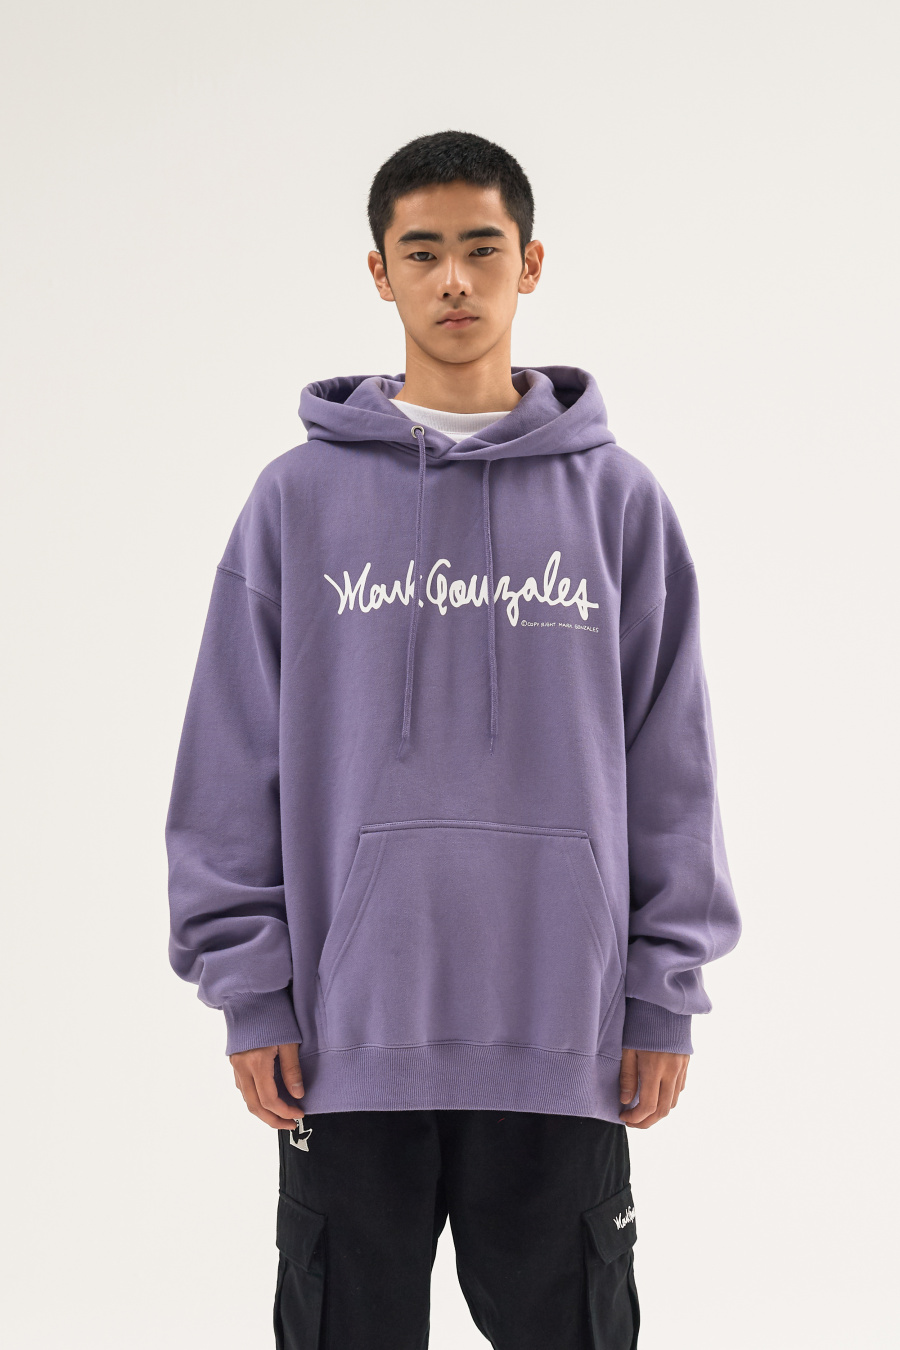 마크 곤잘레스(MARK GONZALES) M/G SIGN LOGO HOODIE BLACK